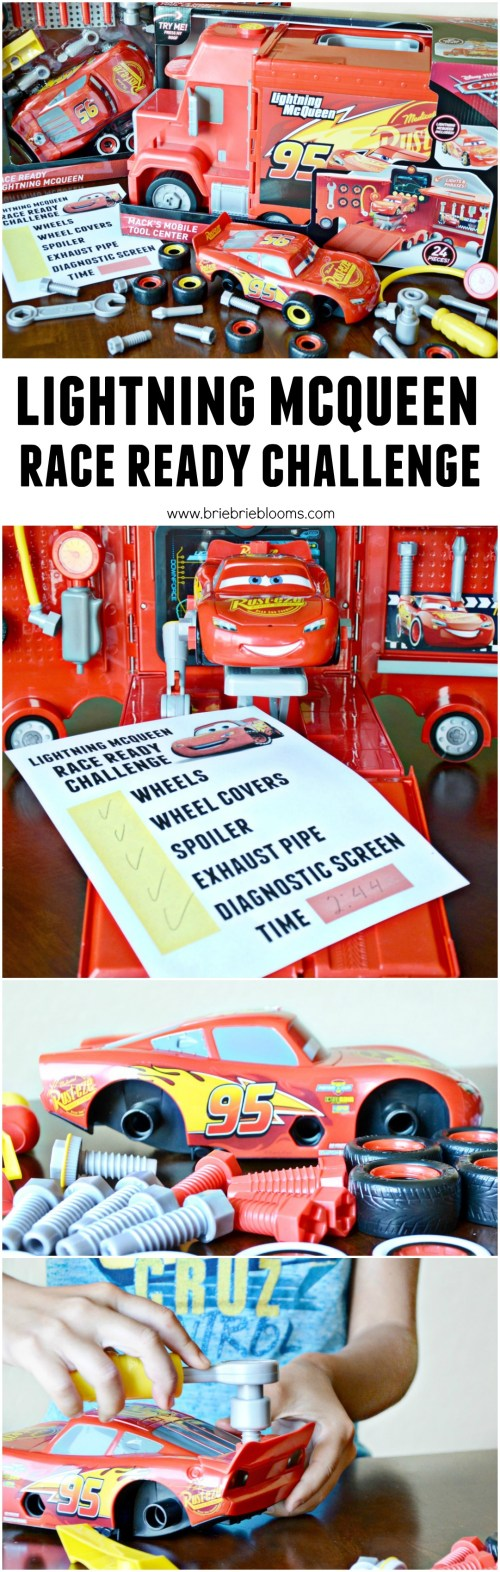 small resolution of see how quickly you can get lightning mcqueen race ready with a free printable lightning mcqueen